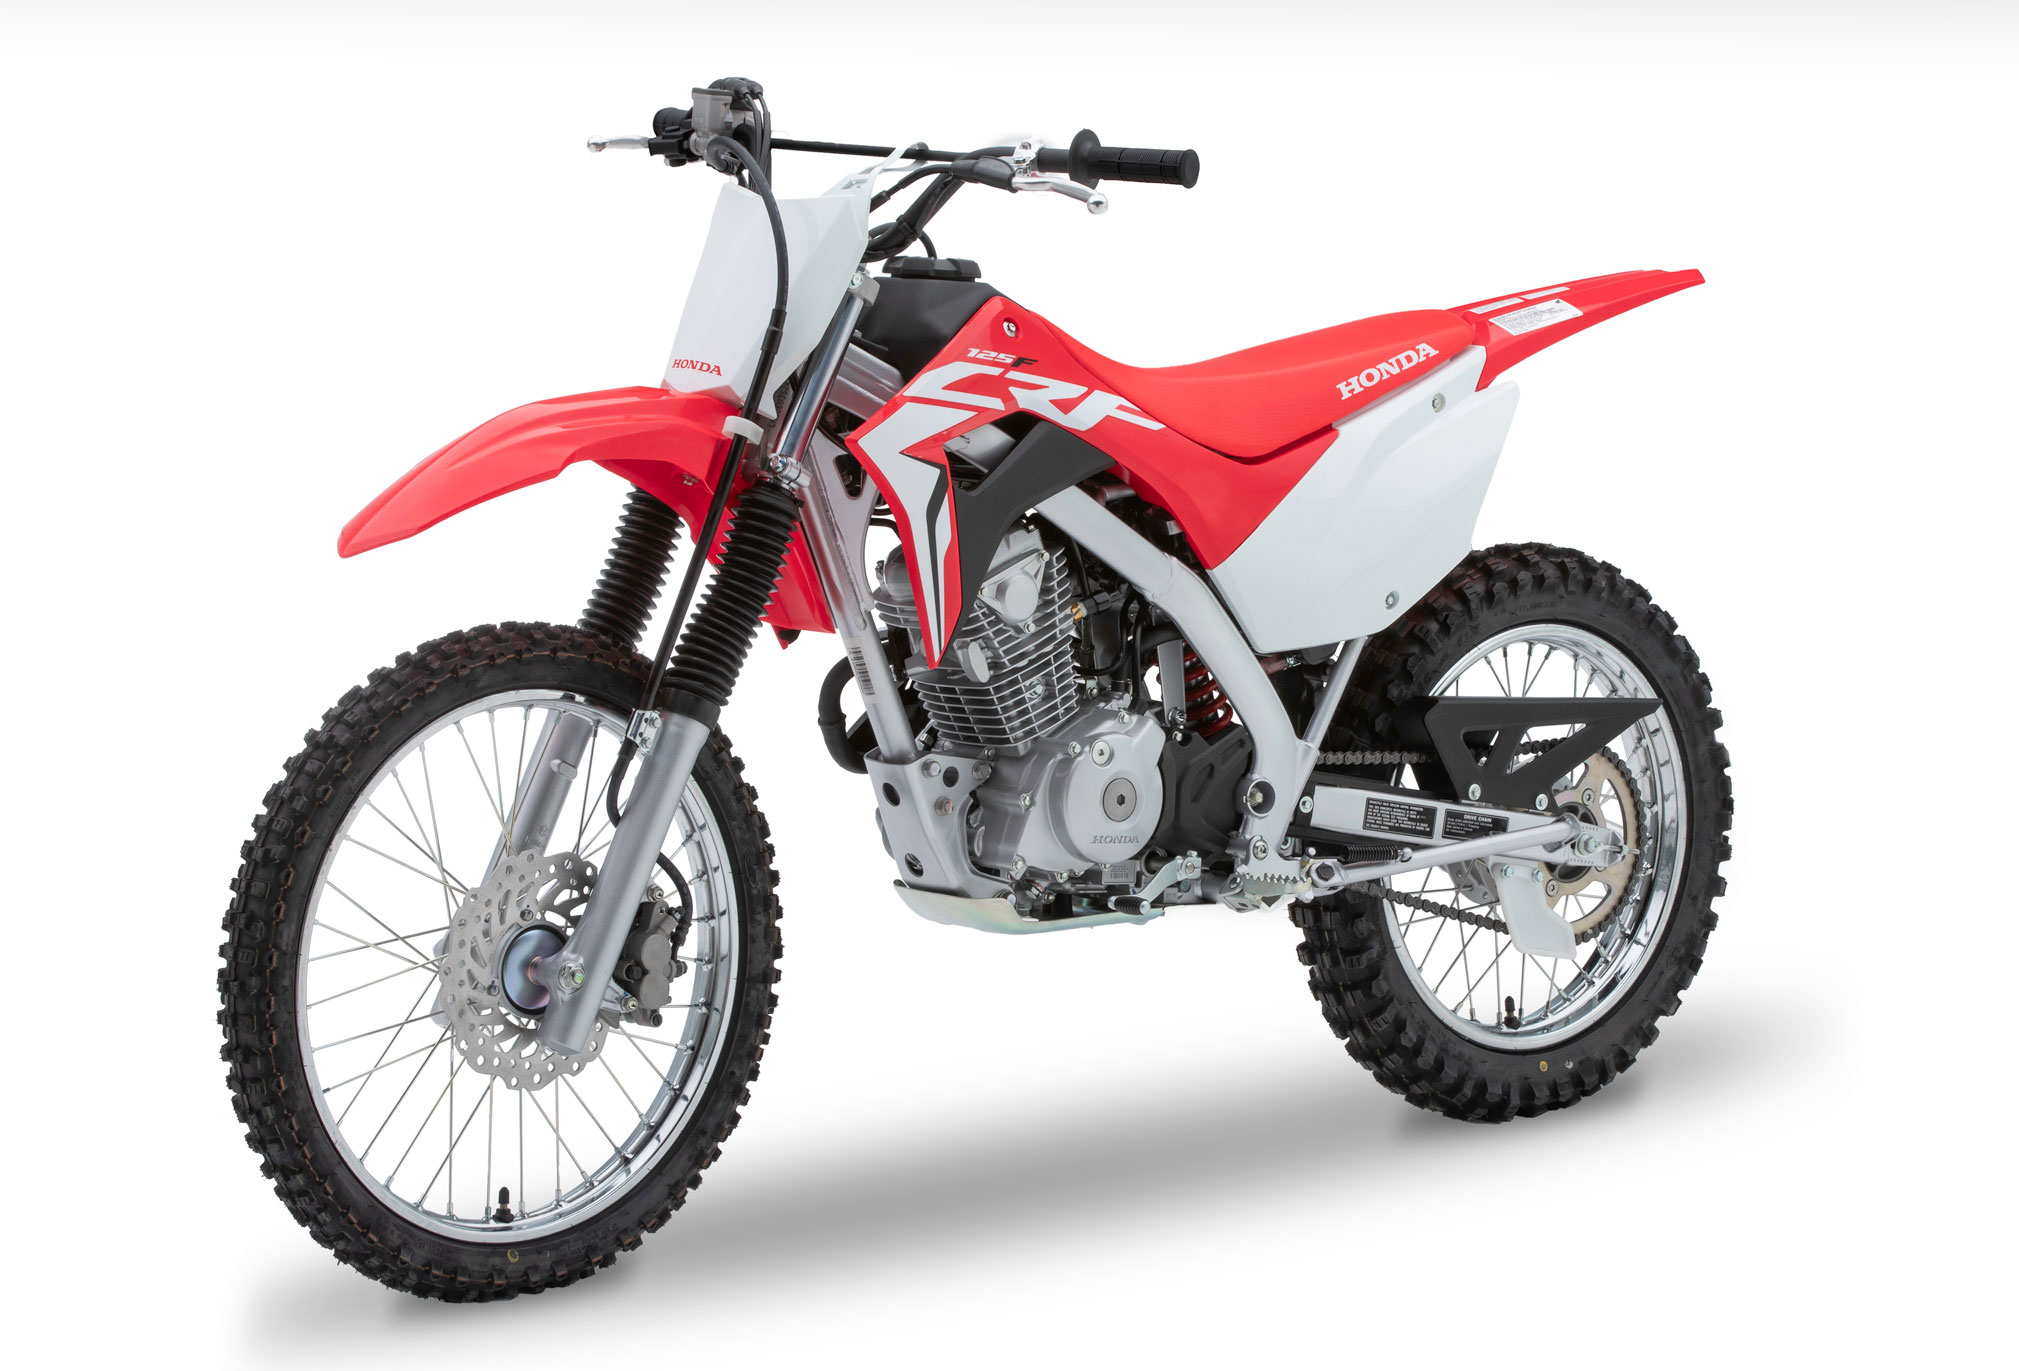 2019 Honda CRF125FB Big Wheel Guide • Total Motorcycle